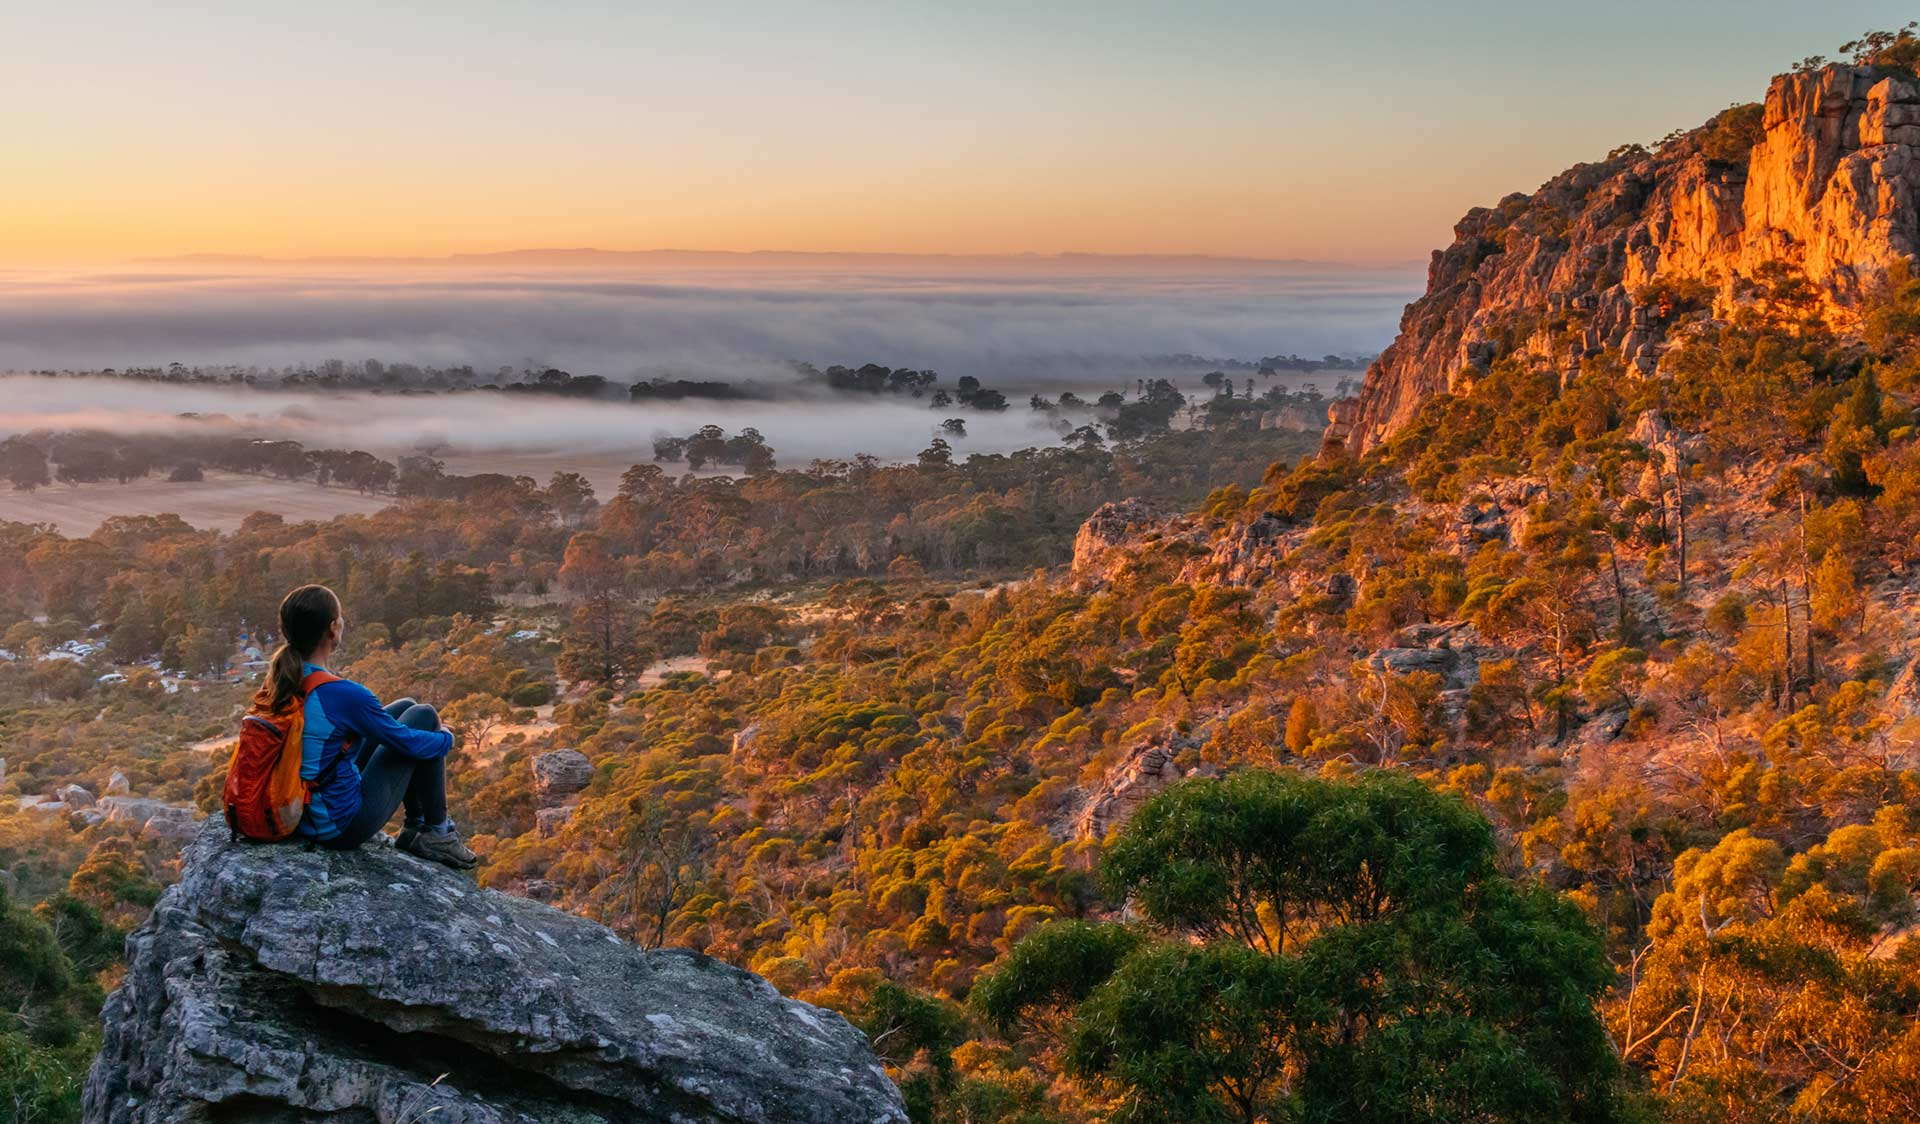 A walker stops to take in the sunrise at Mt Arapiles.